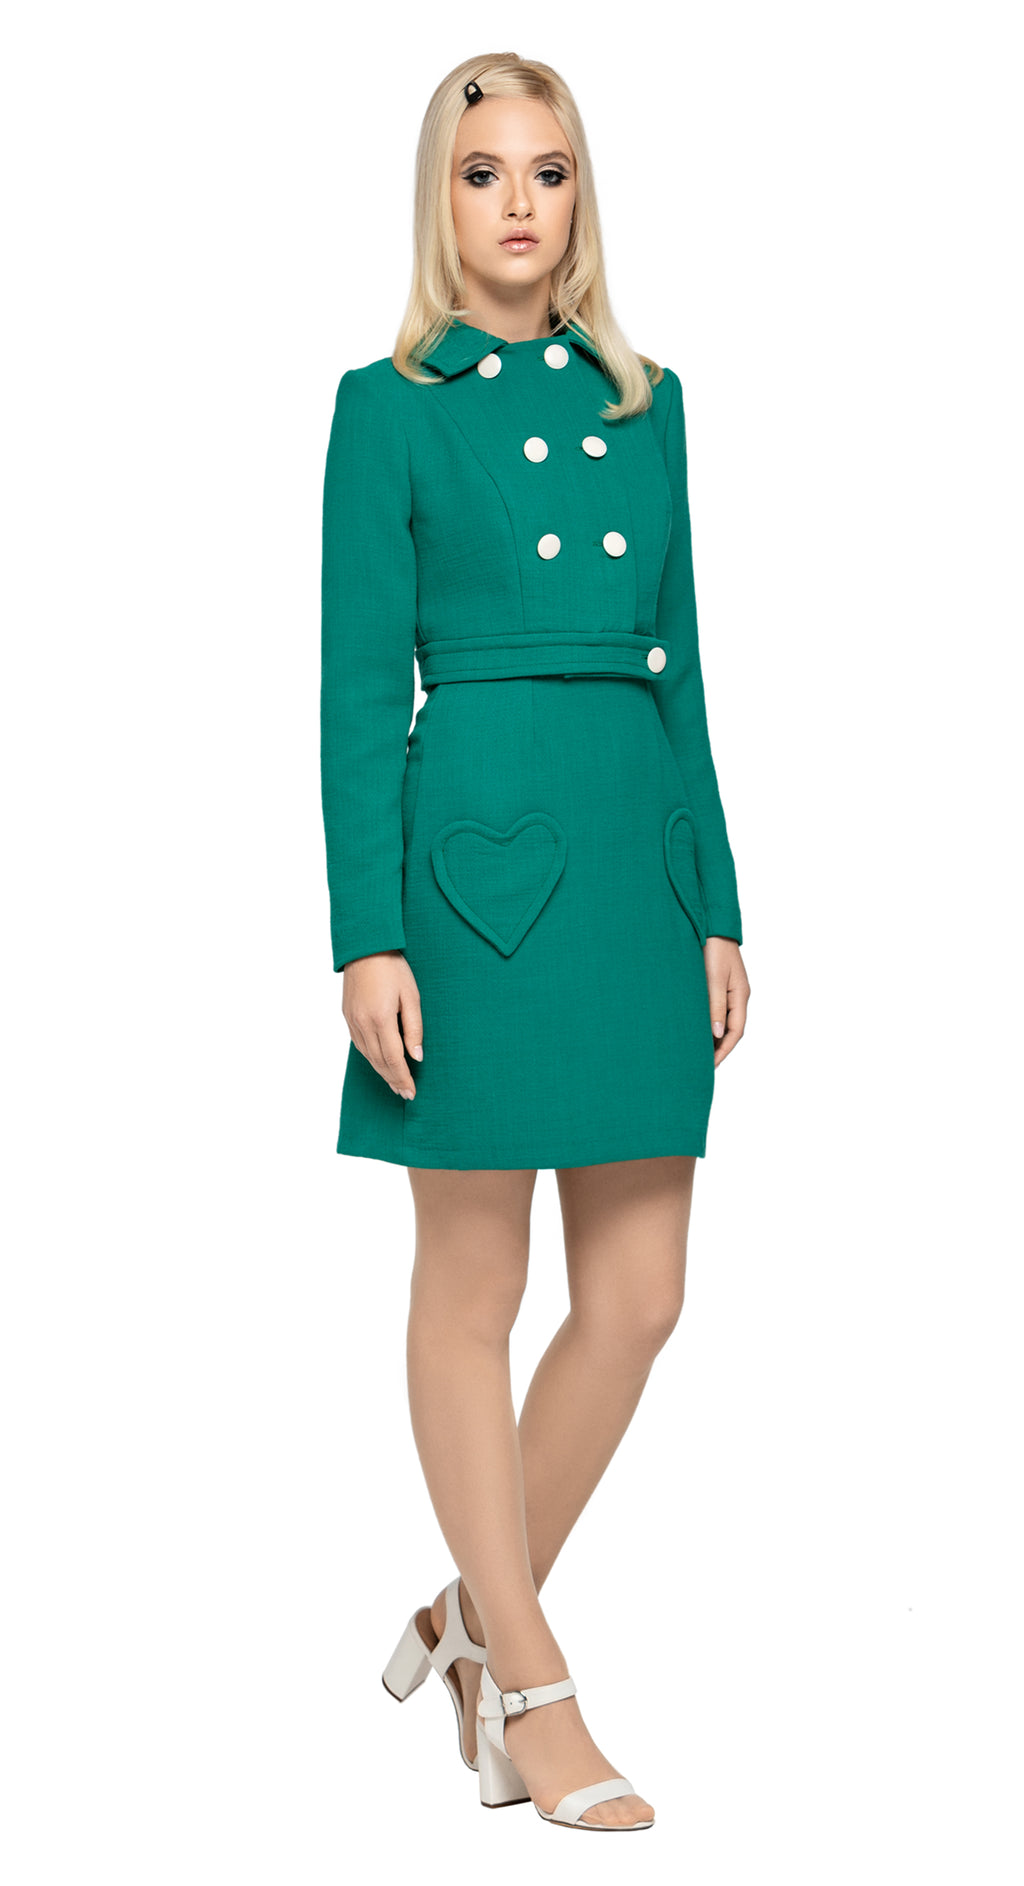 To accompany our Vintage Green Dress and Vintage Green Skirt, our fully lined fair-weather collared, cropped jacket can be worn to suit a work or play environment. Sophisticated and impacting when worn as a set, or casually over existing wardrobe.  Made of beautiful Spanish mill fabric, with a seven white button front closure.  Alternate colours available (please inquire).